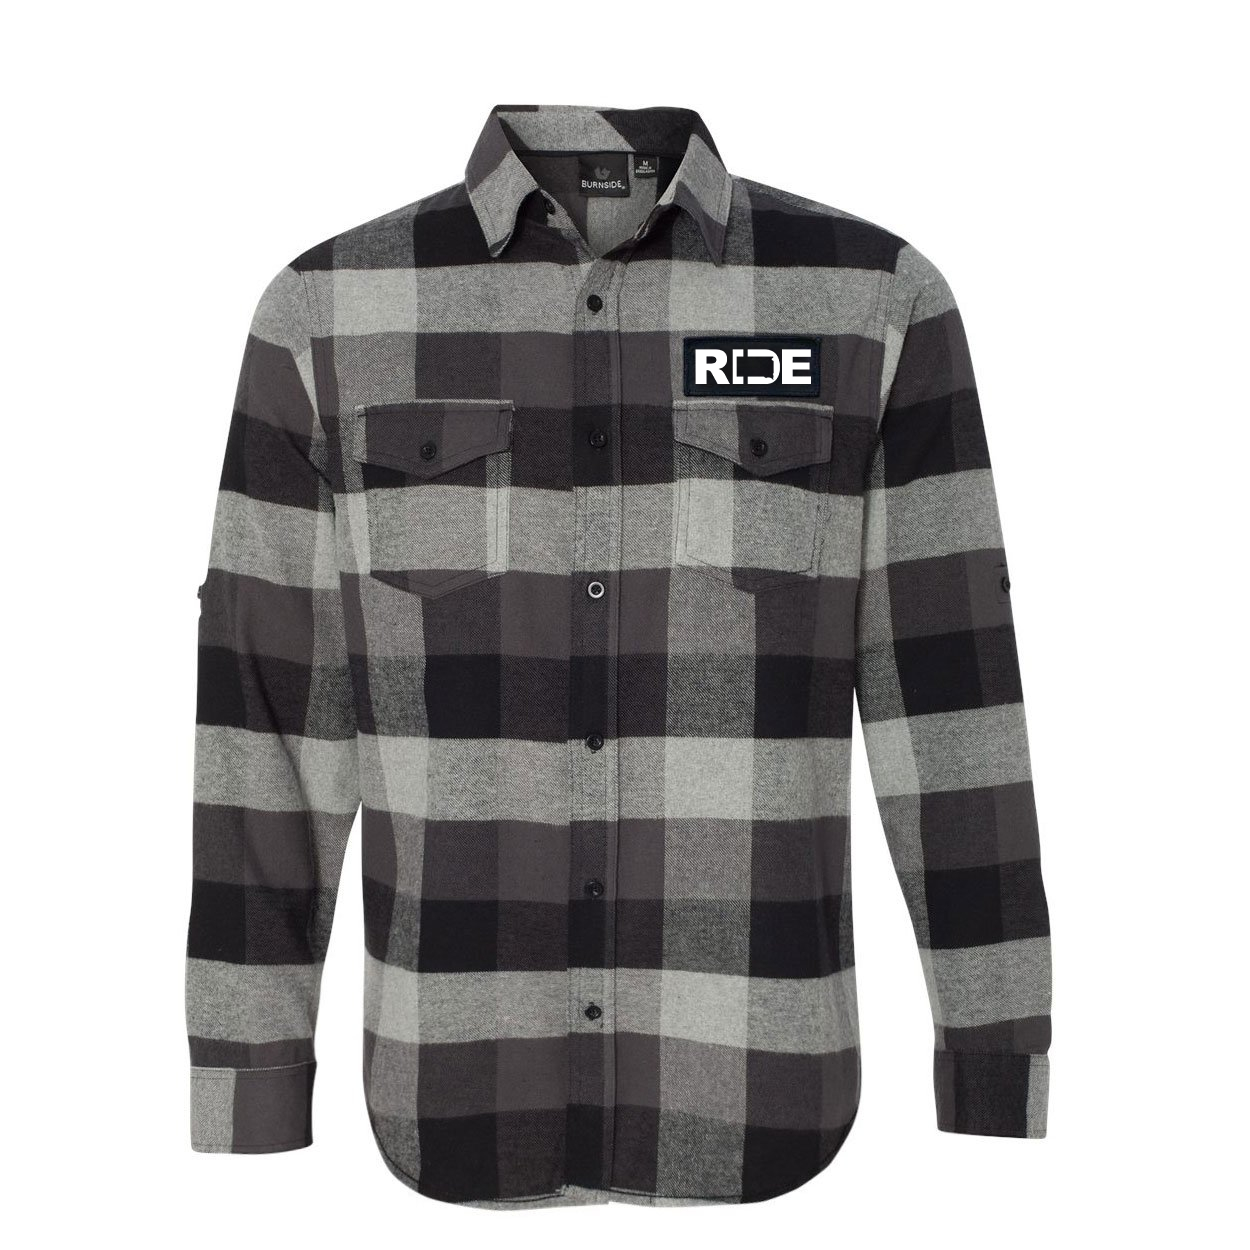 Ride South Dakota Classic Unisex Long Sleeve Woven Patch Flannel Shirt Black/Gray (White Logo)